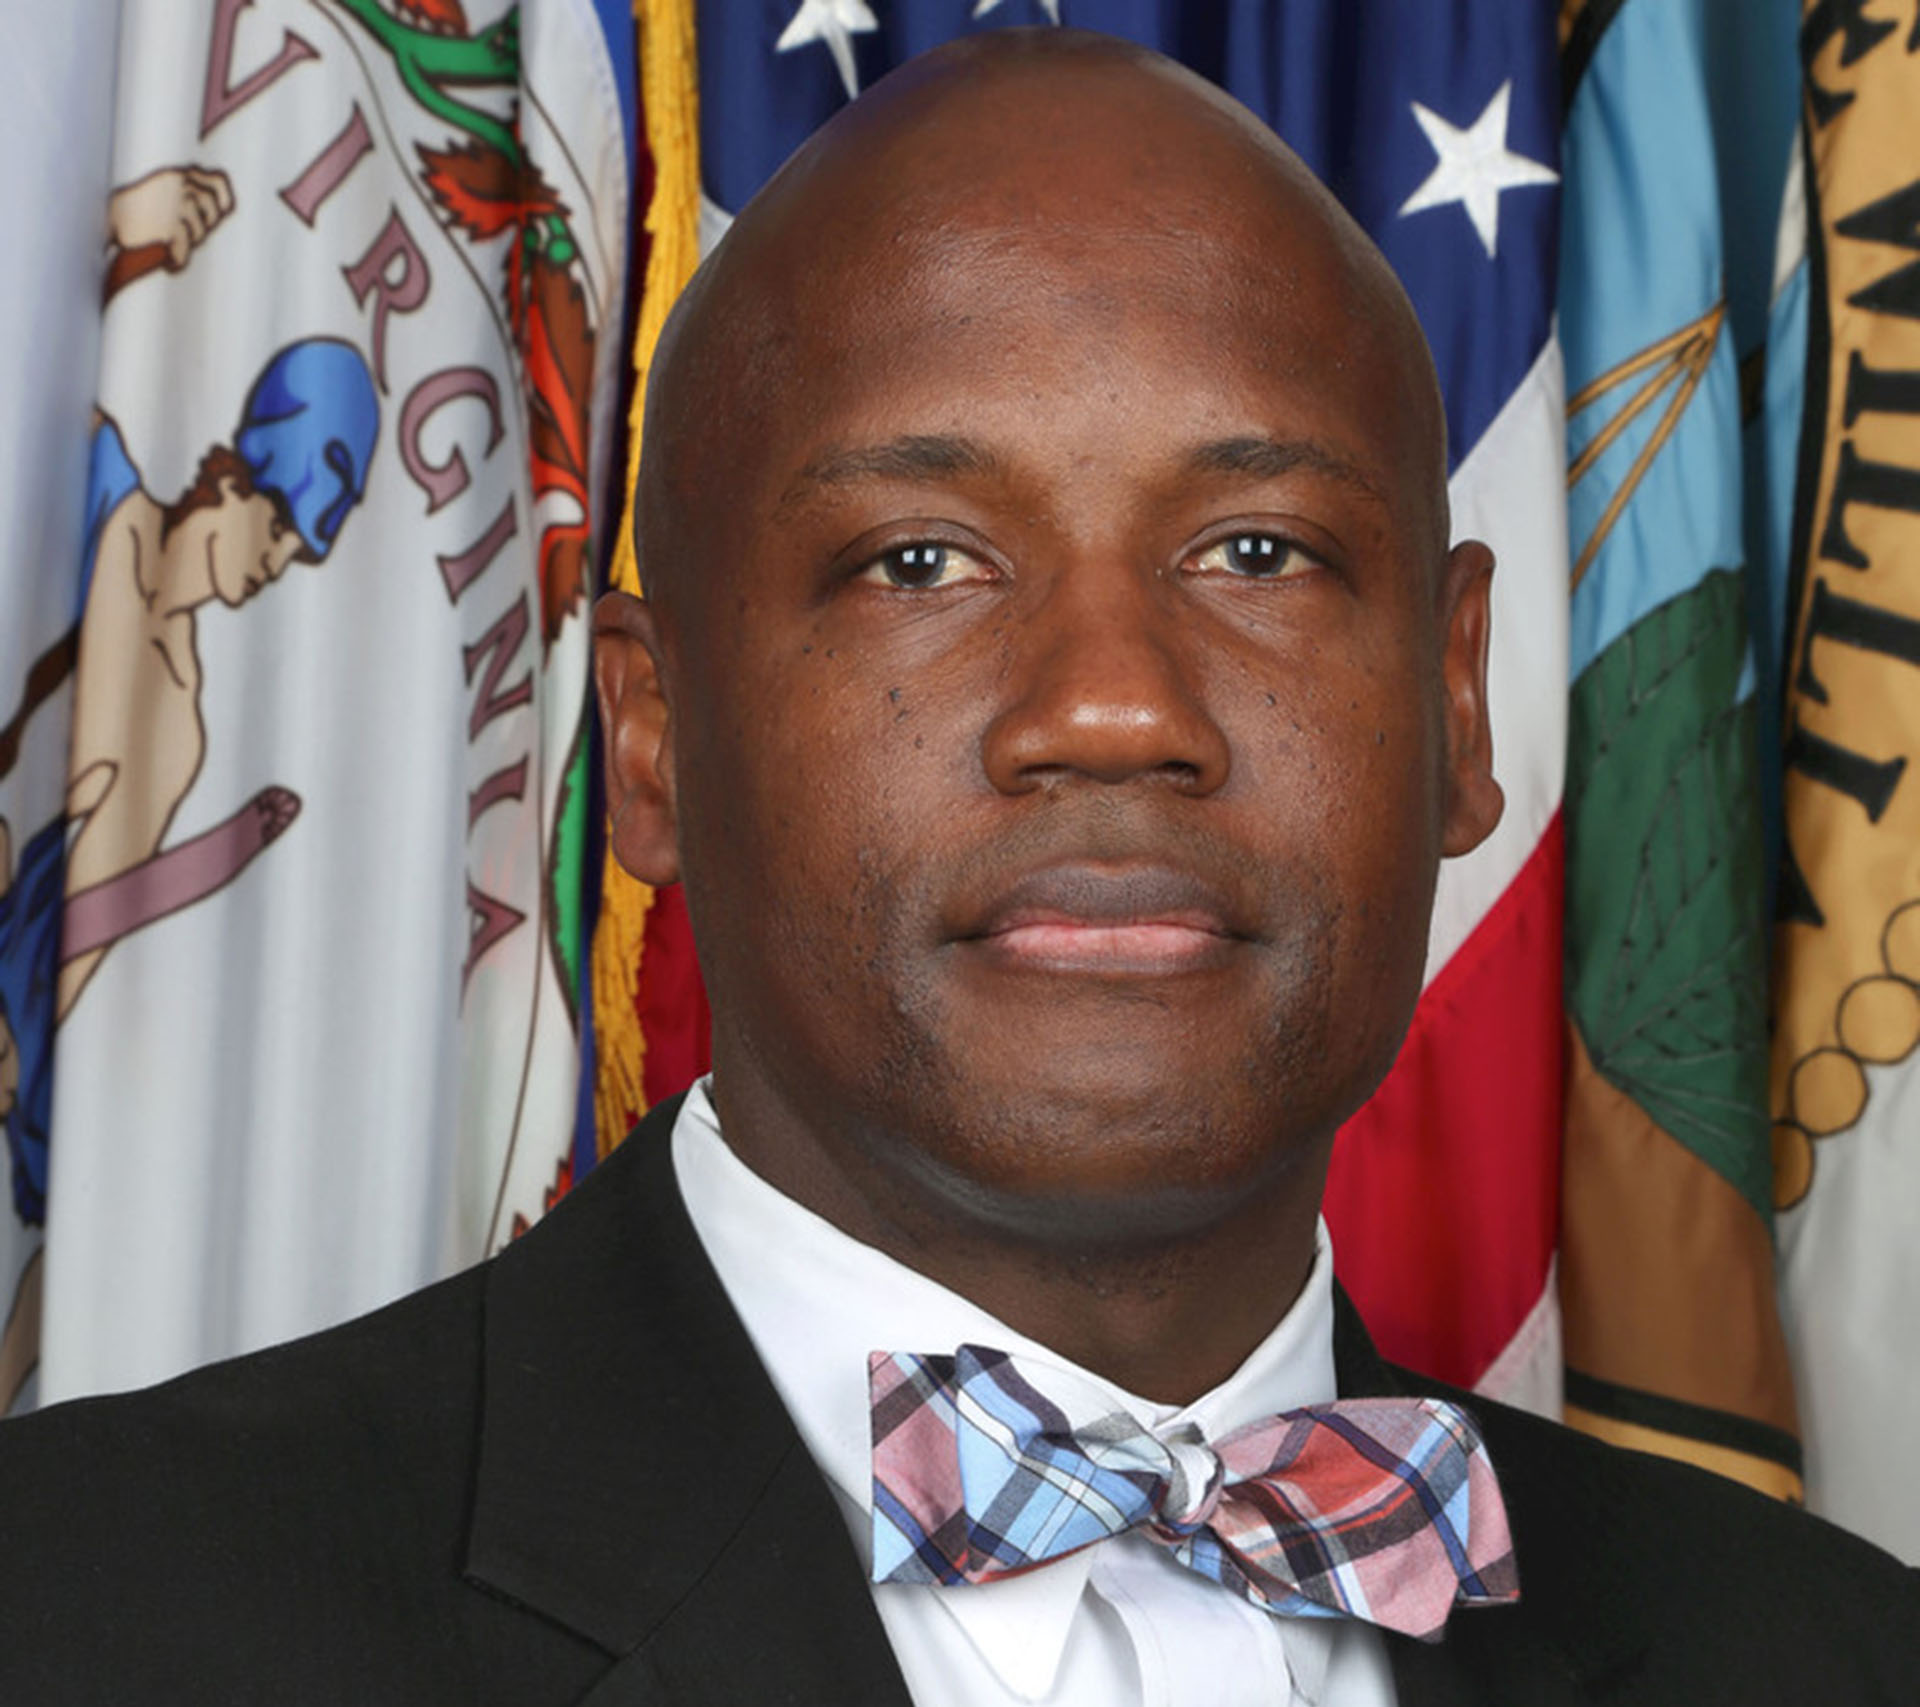 Supervisor to discuss Veterans Commission idea at meeting